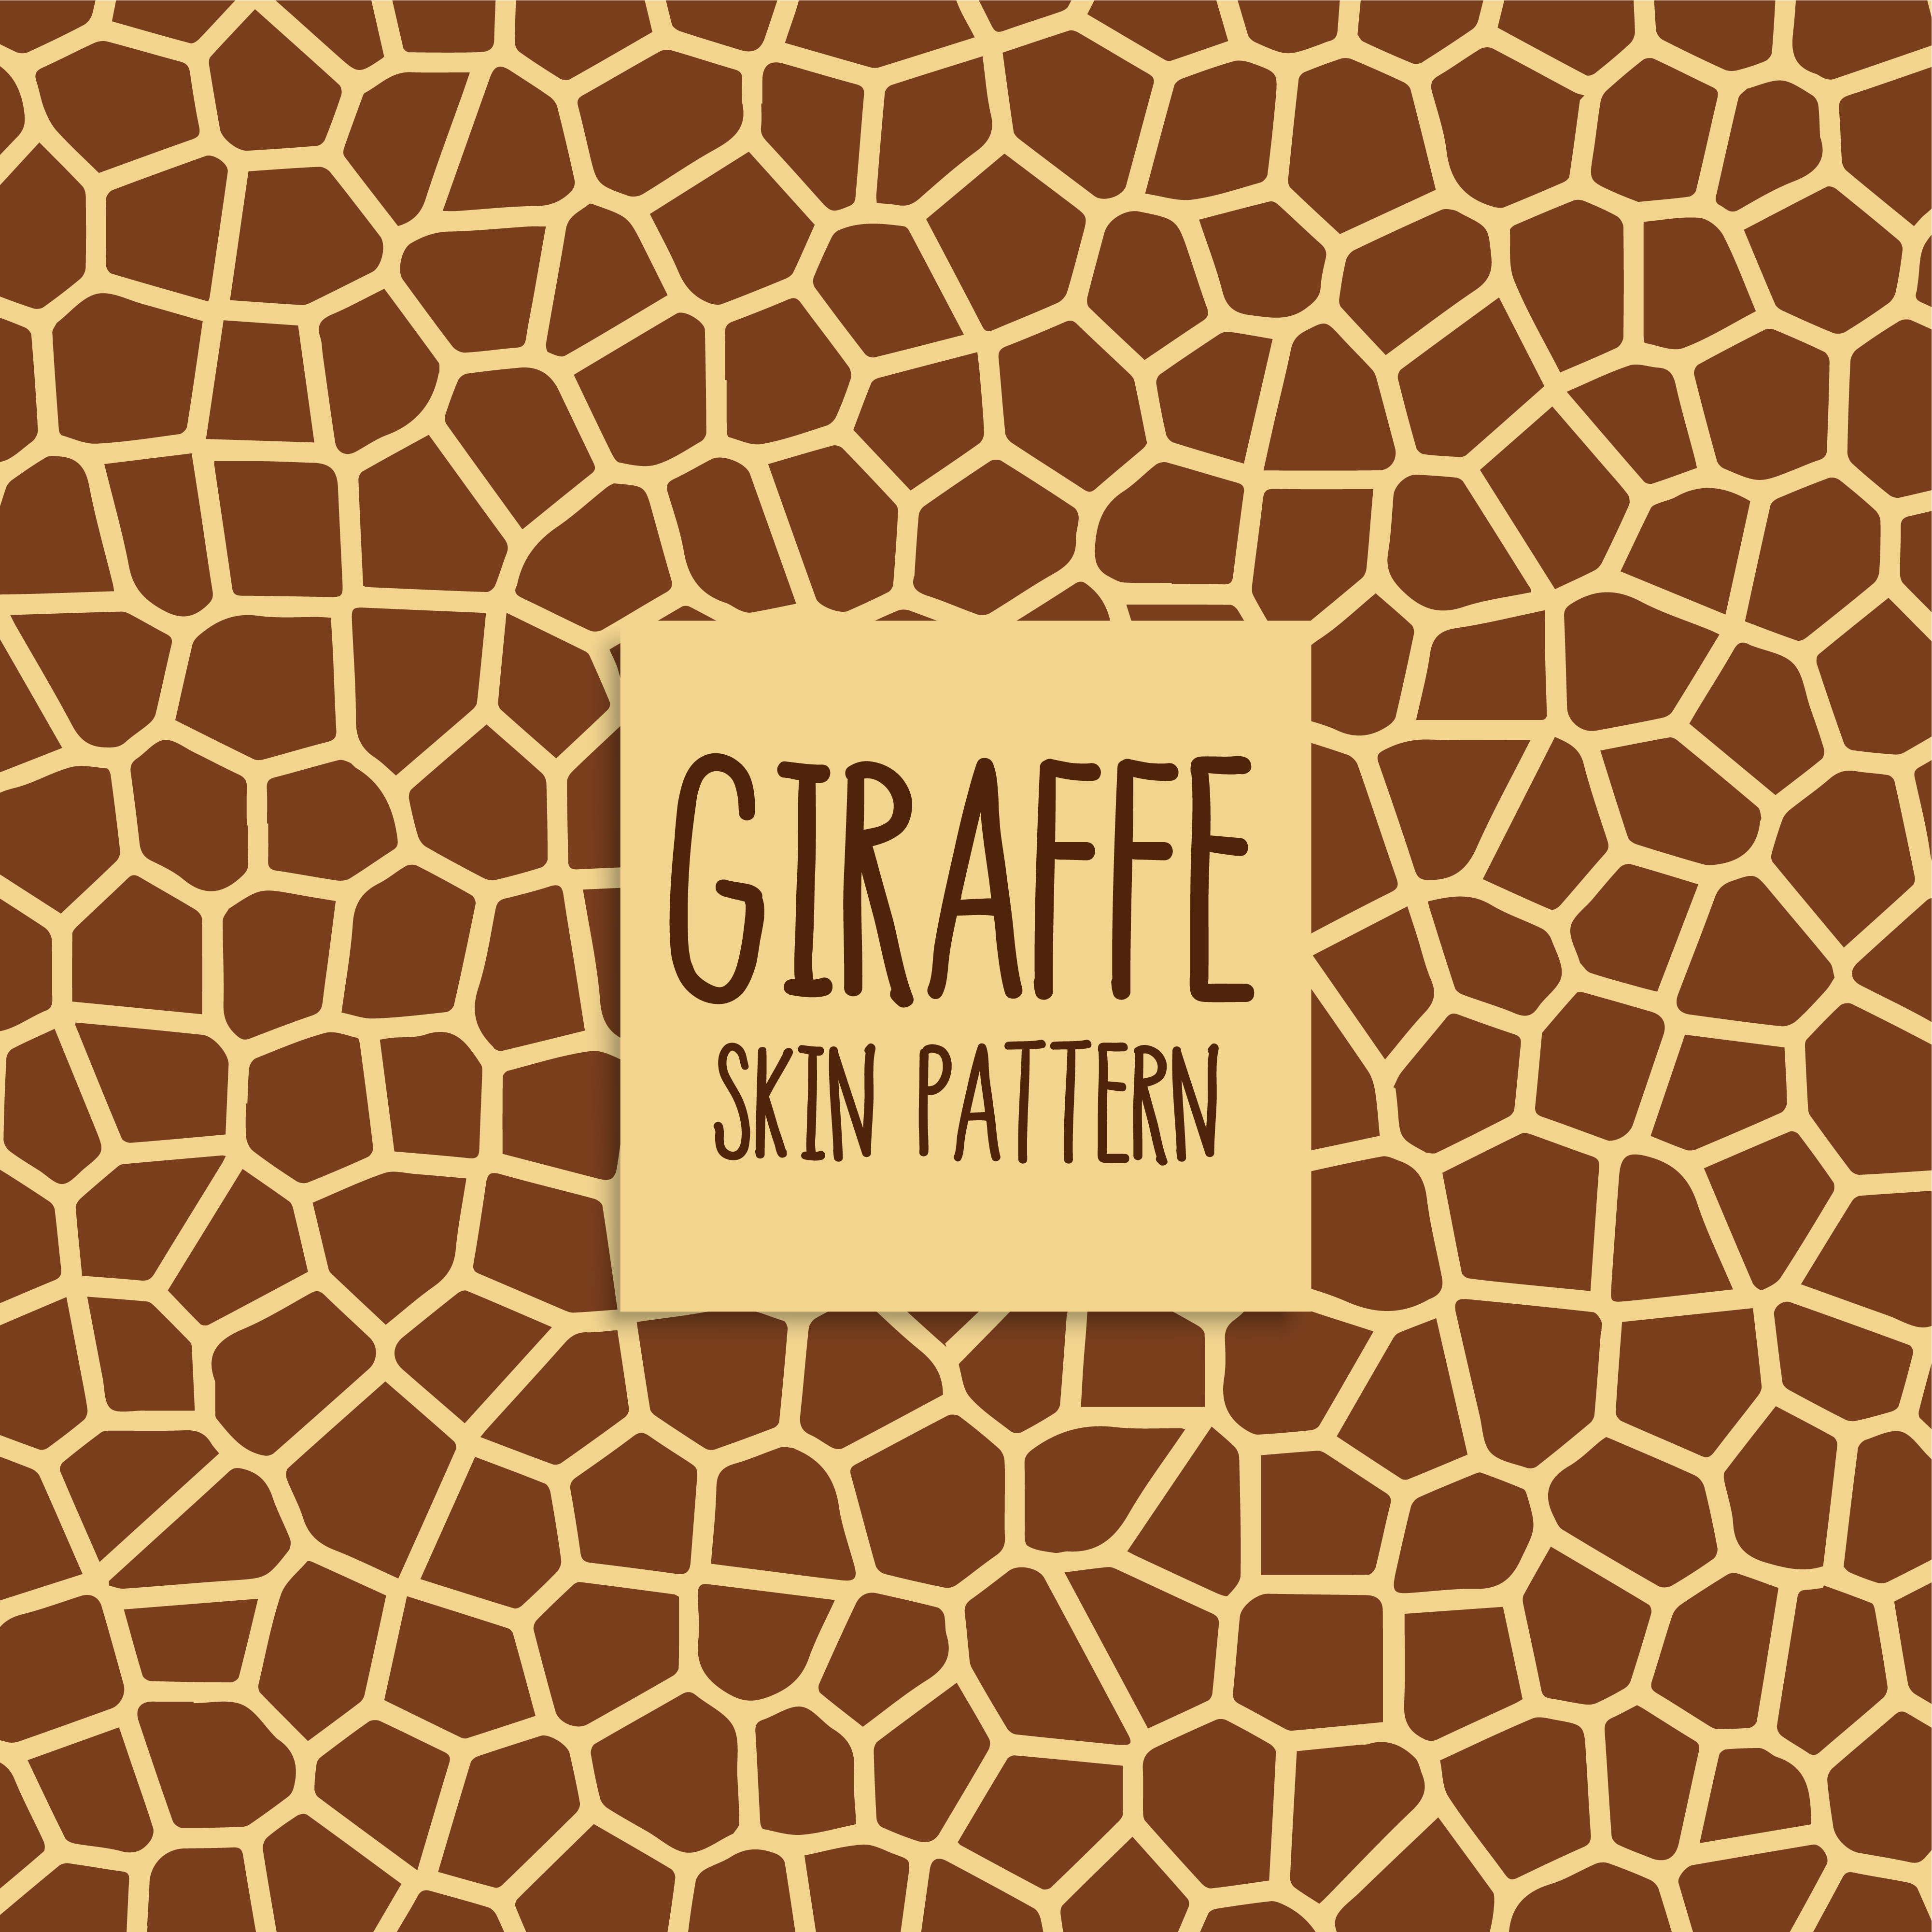 Giraffe Skin Pattern In Brown Color Download Free Vector